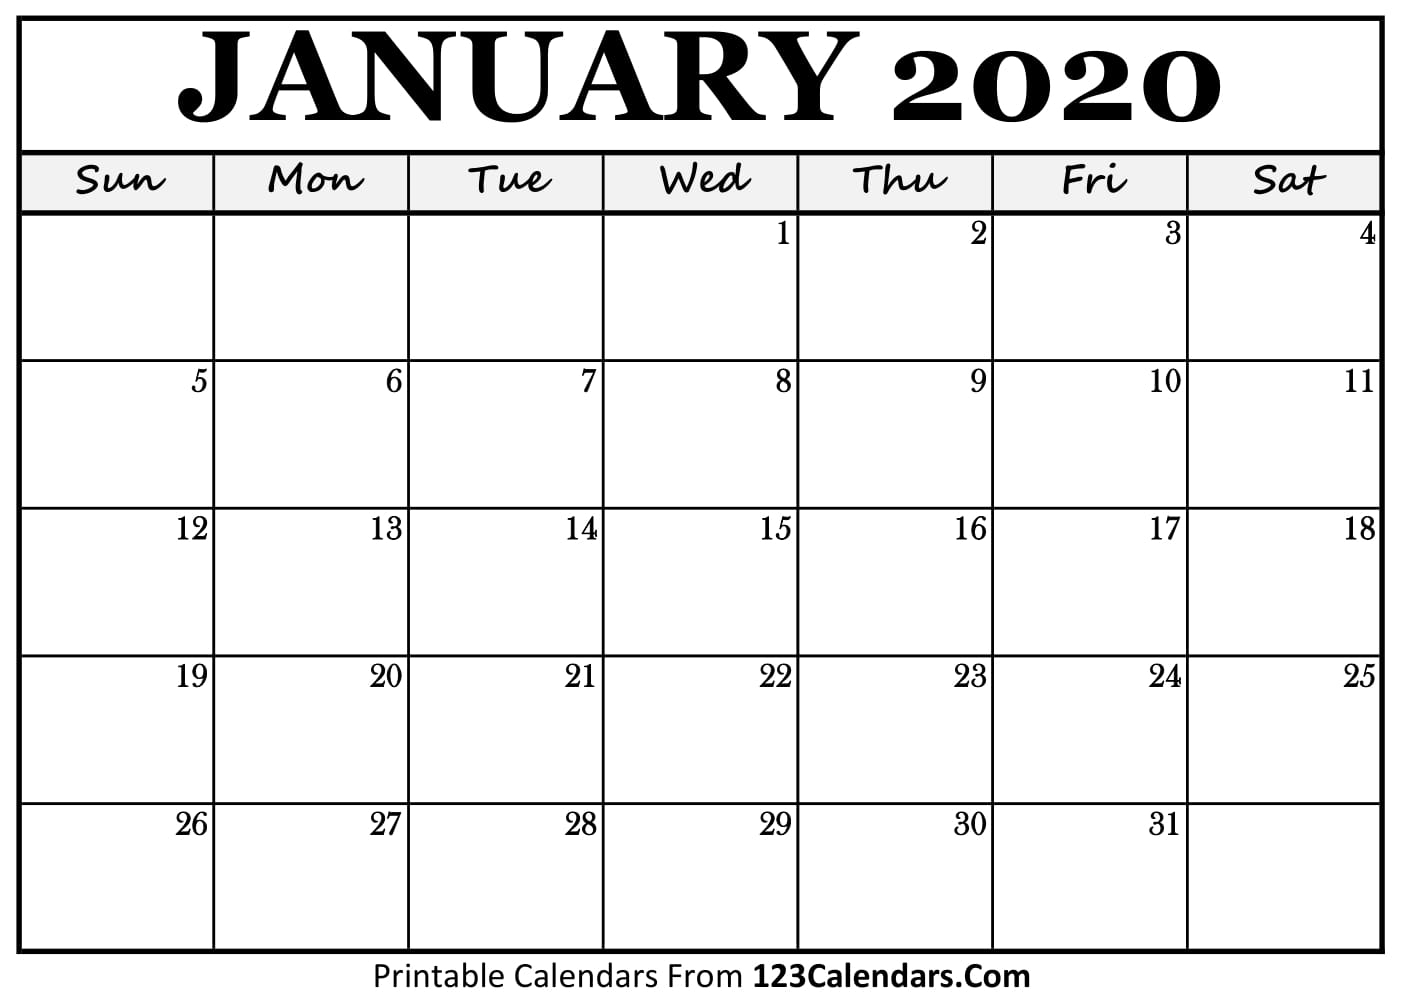 January 2020 Printable Calendar | 123Calendars with regard to 123 Calendars January 2020